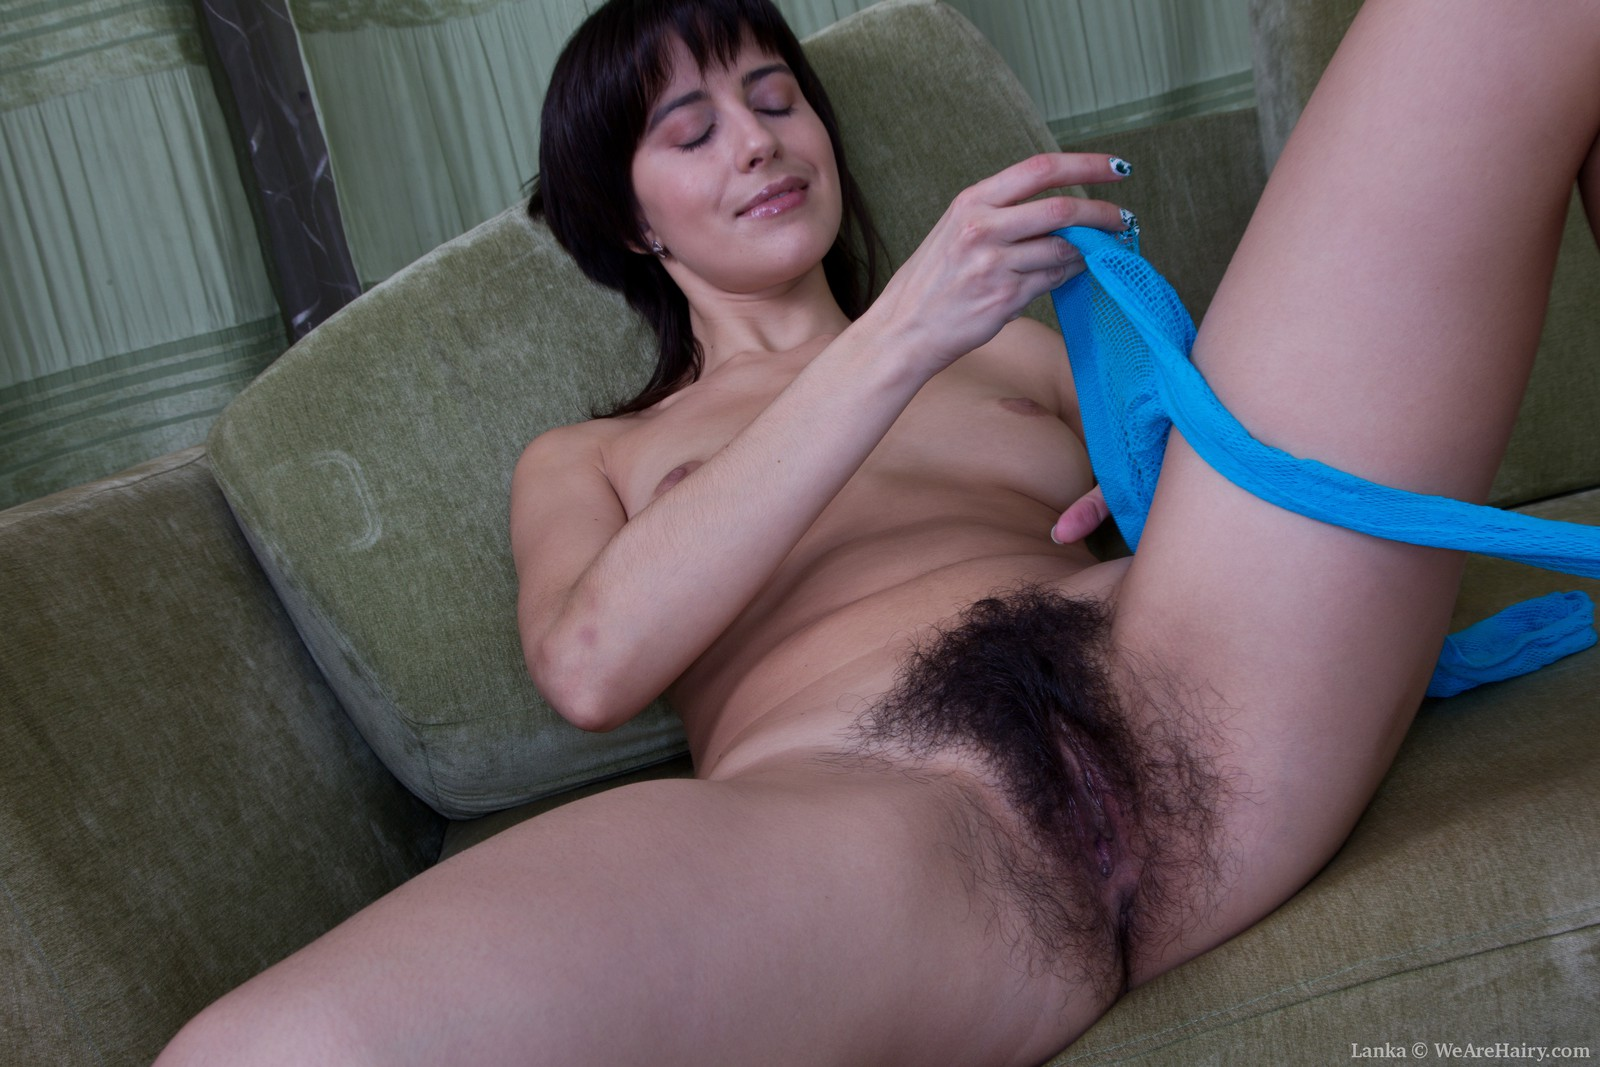 ... grandma hairy pussy compilations, free hairy gallery @ Hairy Naked